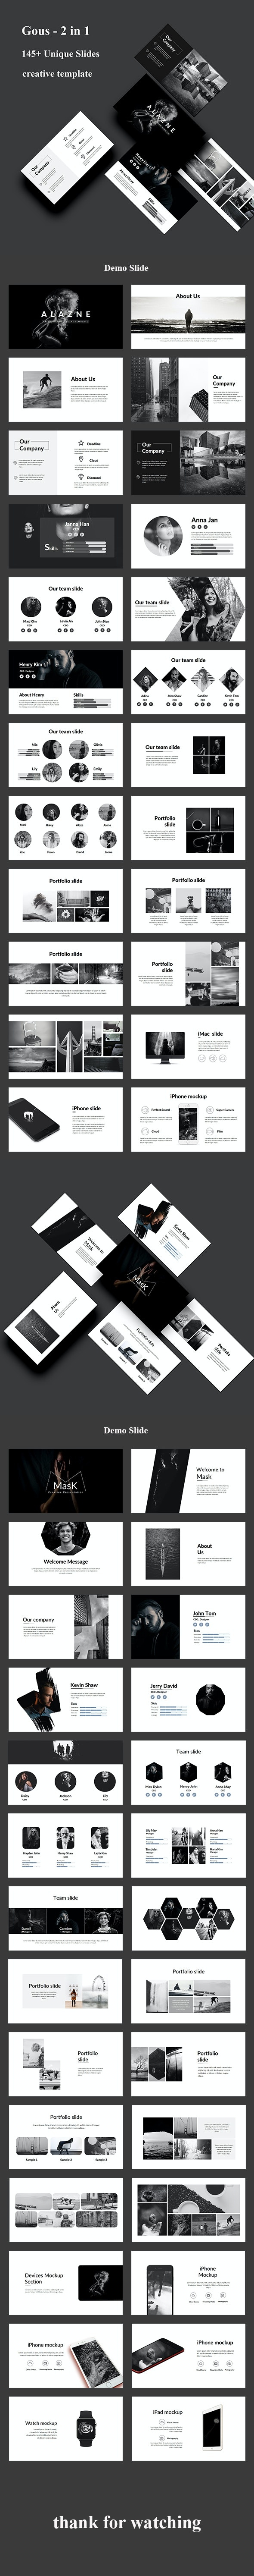 Gous 2 in 1 - Creative Powerpoint Template Bundle - Creative PowerPoint Templates